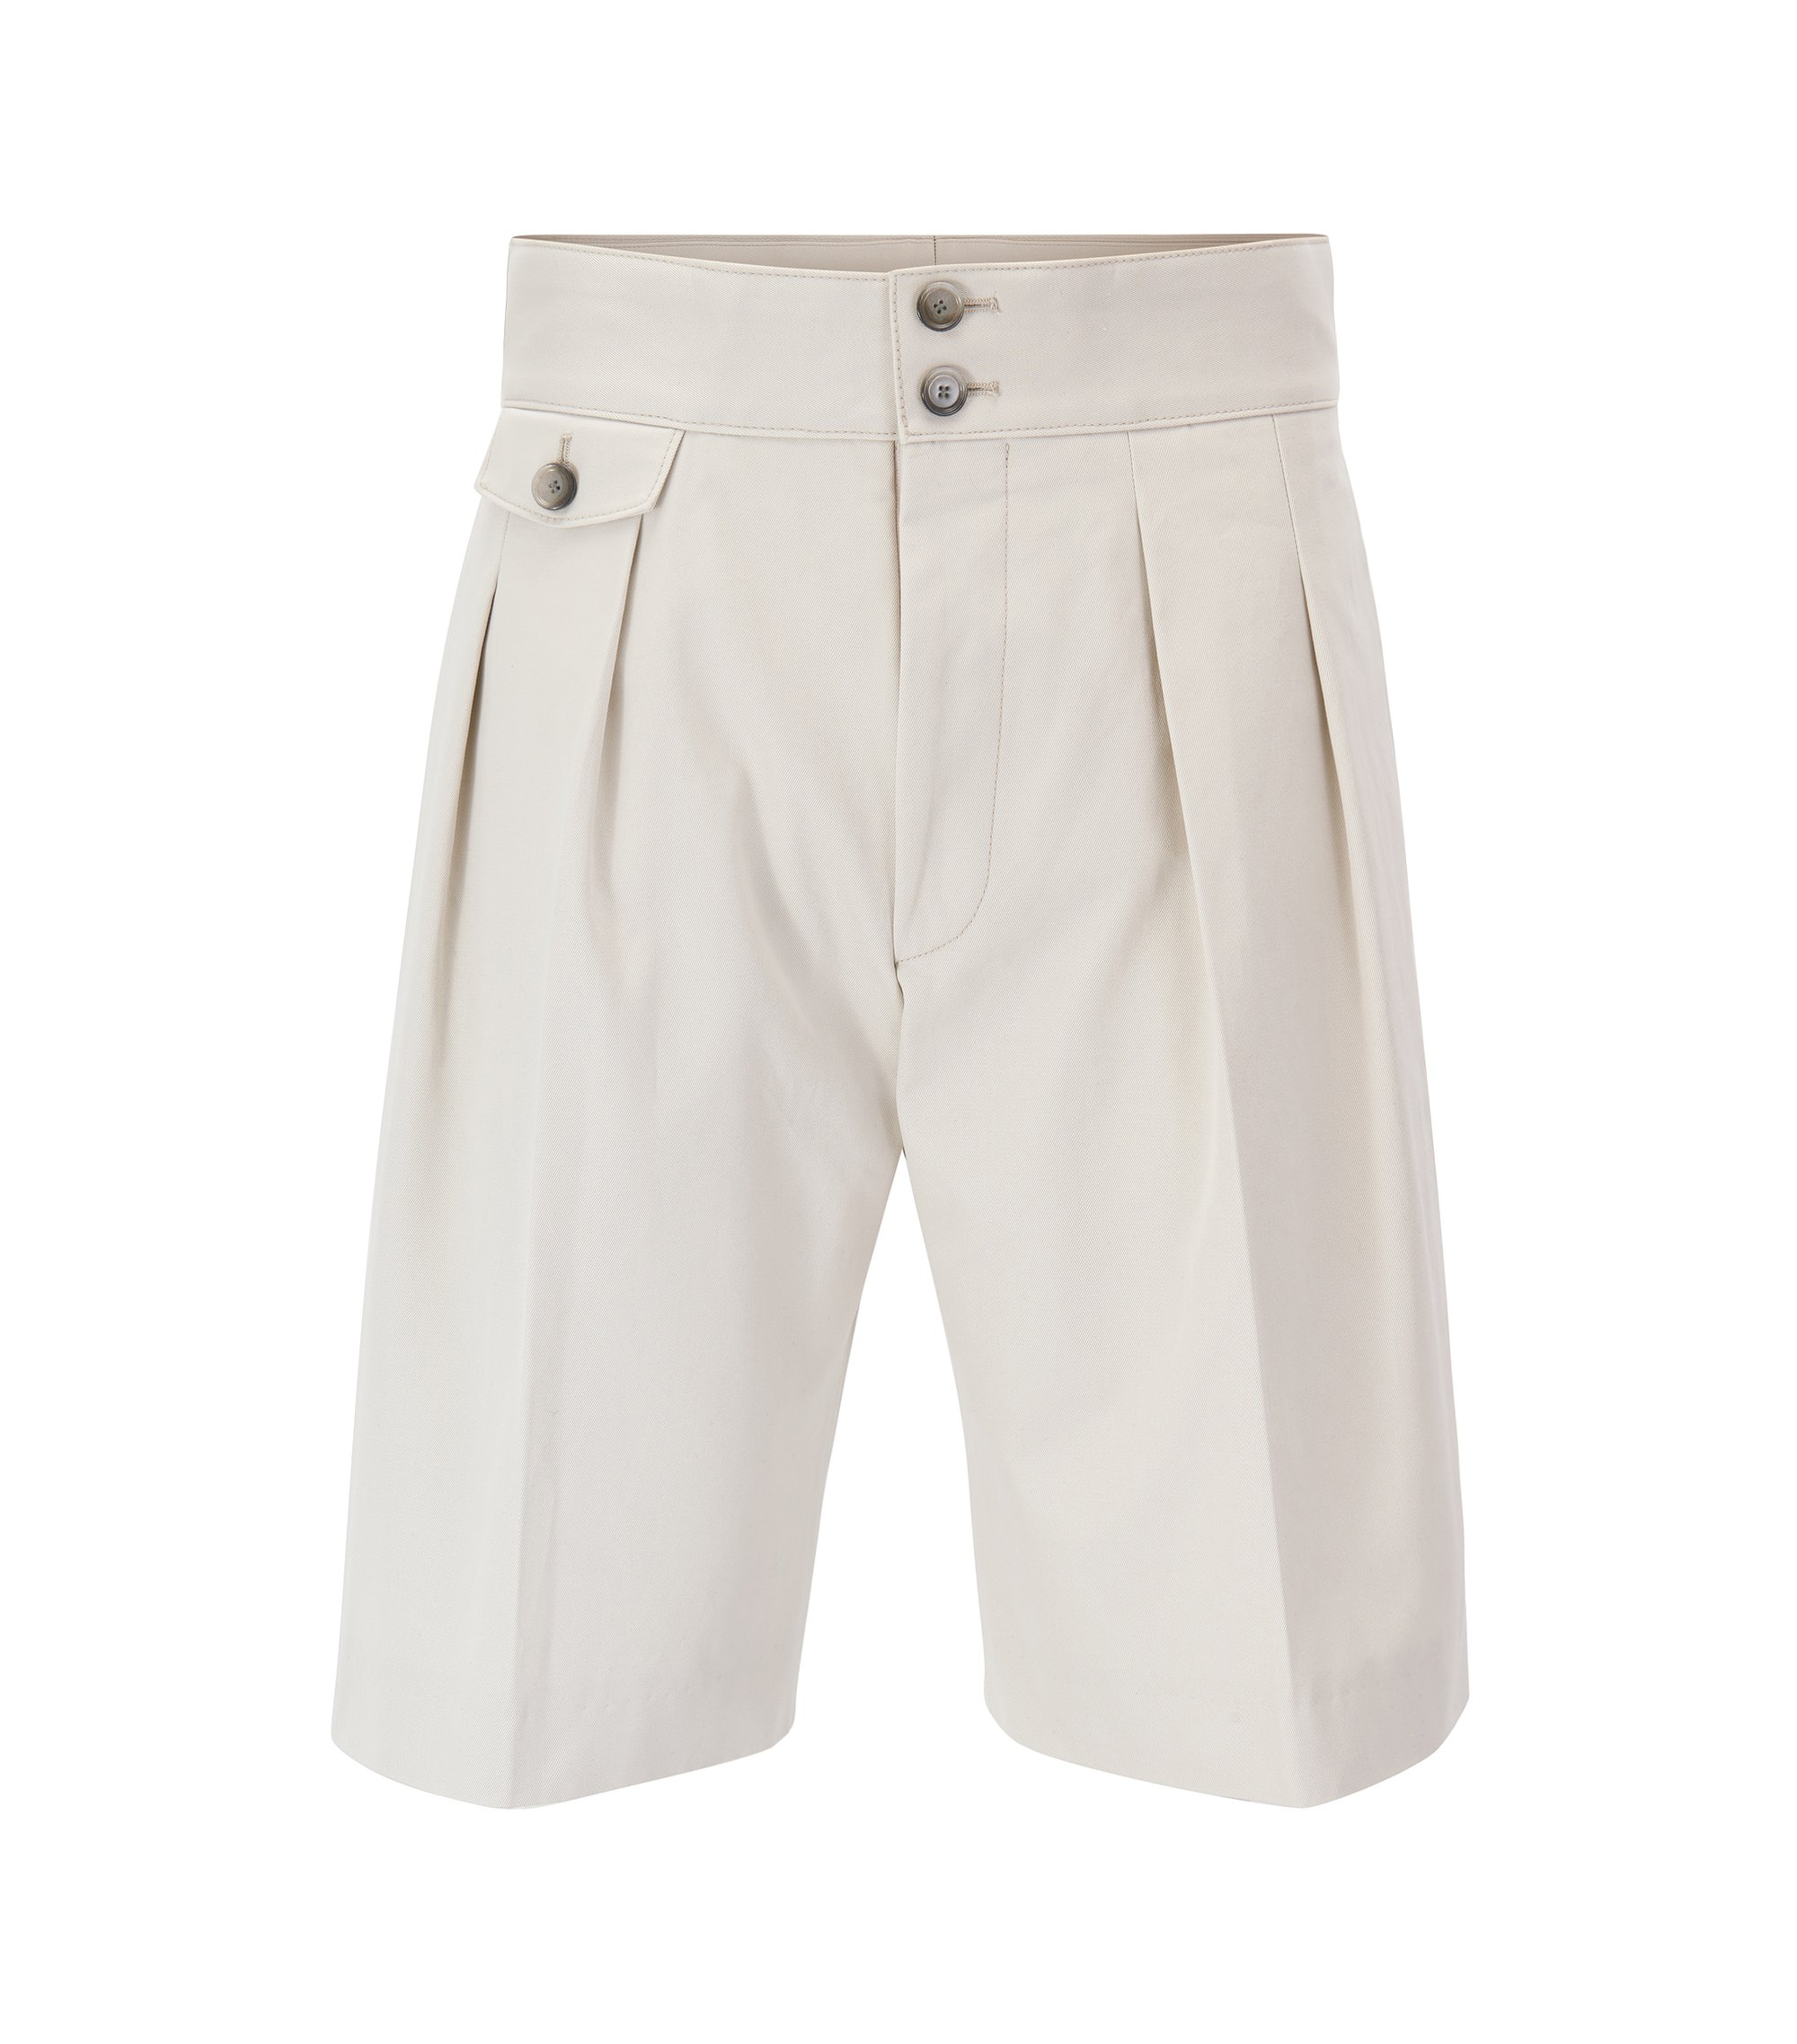 Runway Edition high-waisted pleated shorts in pure cotton, Natural